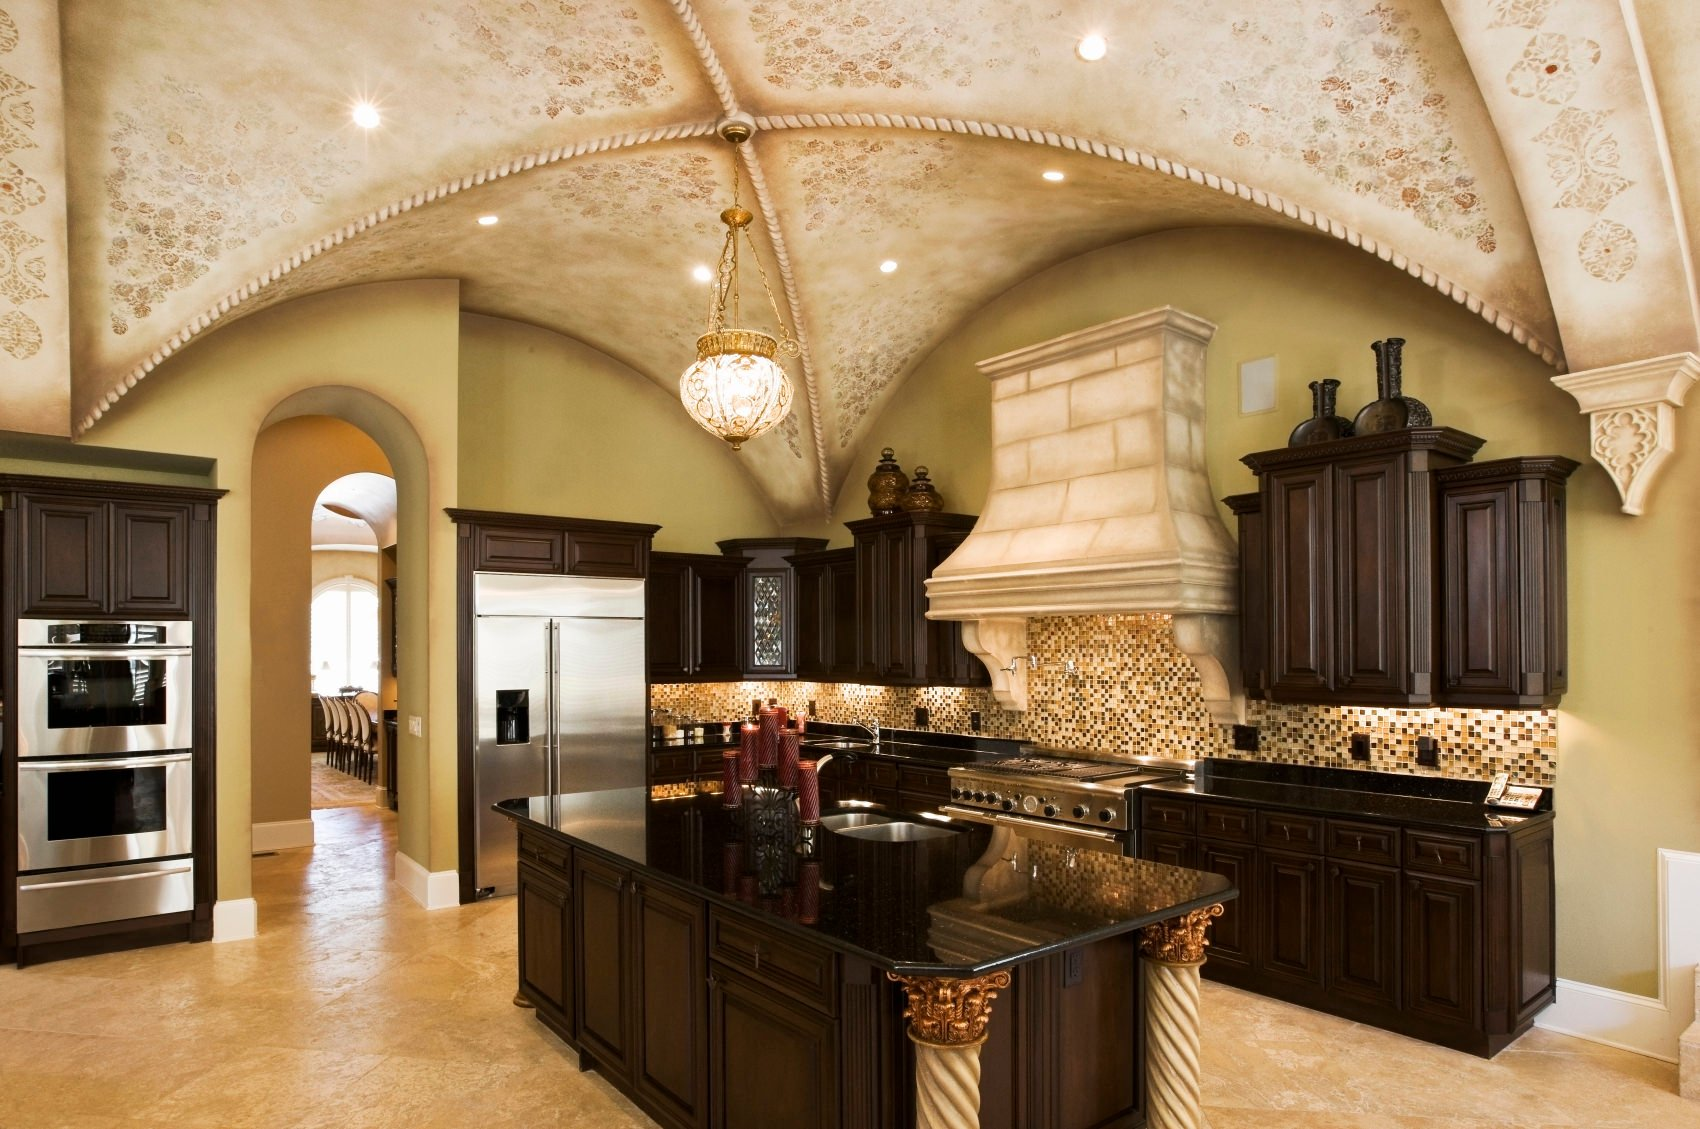 This kitchen is oozing with elegance because of its stunning groin vault ceiling. The lighting looks perfect as well, while the cabinetry, counters and center island with dark countertops look absolutely beautiful.